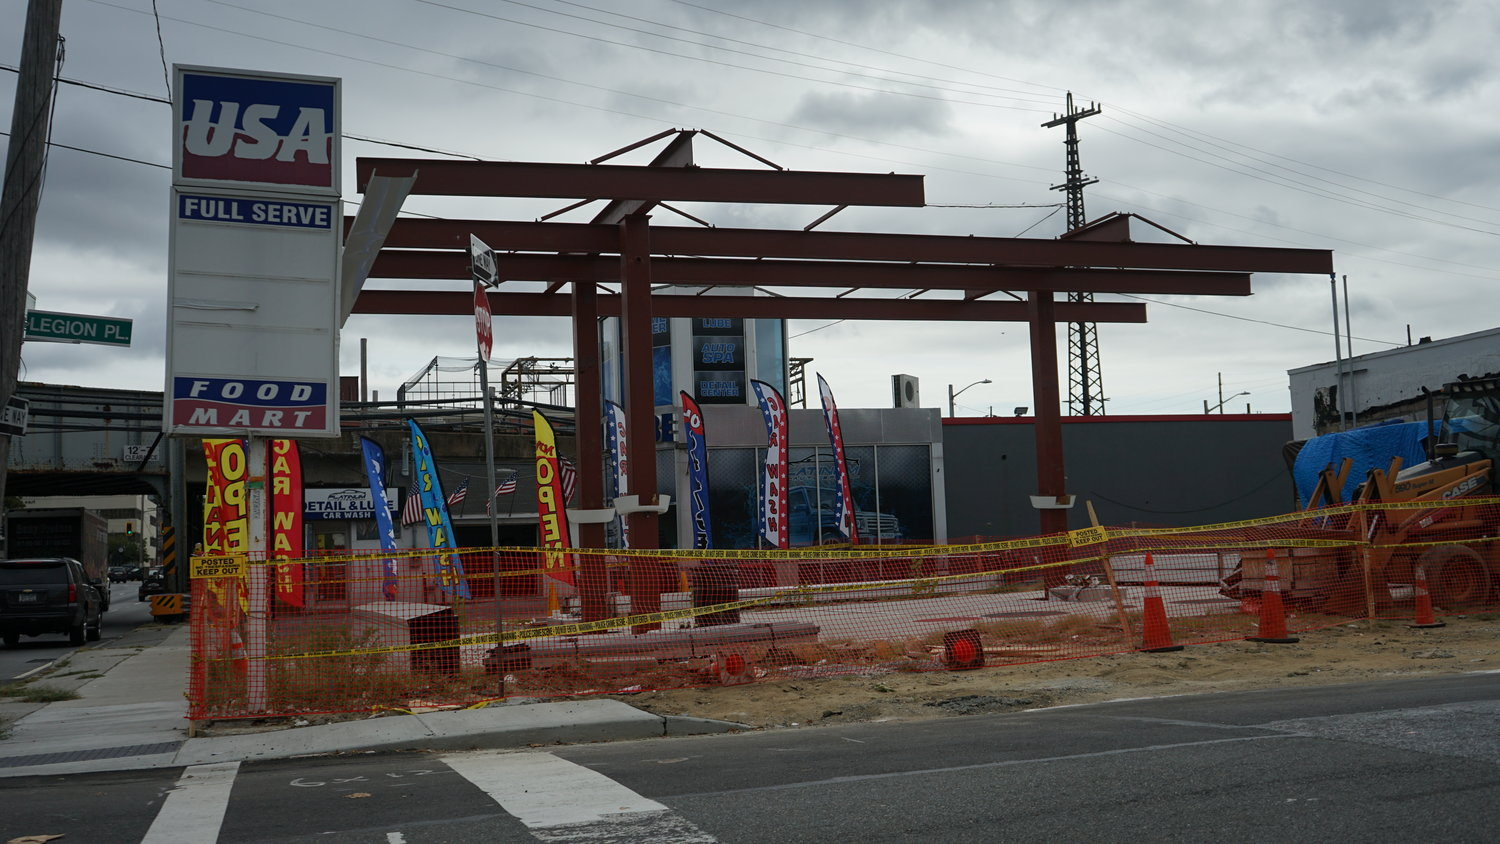 The village may have wrongly issued a building permit for a gas station on Sunrise Highway. The permit was subsequently revoked, leaving construction half finished.